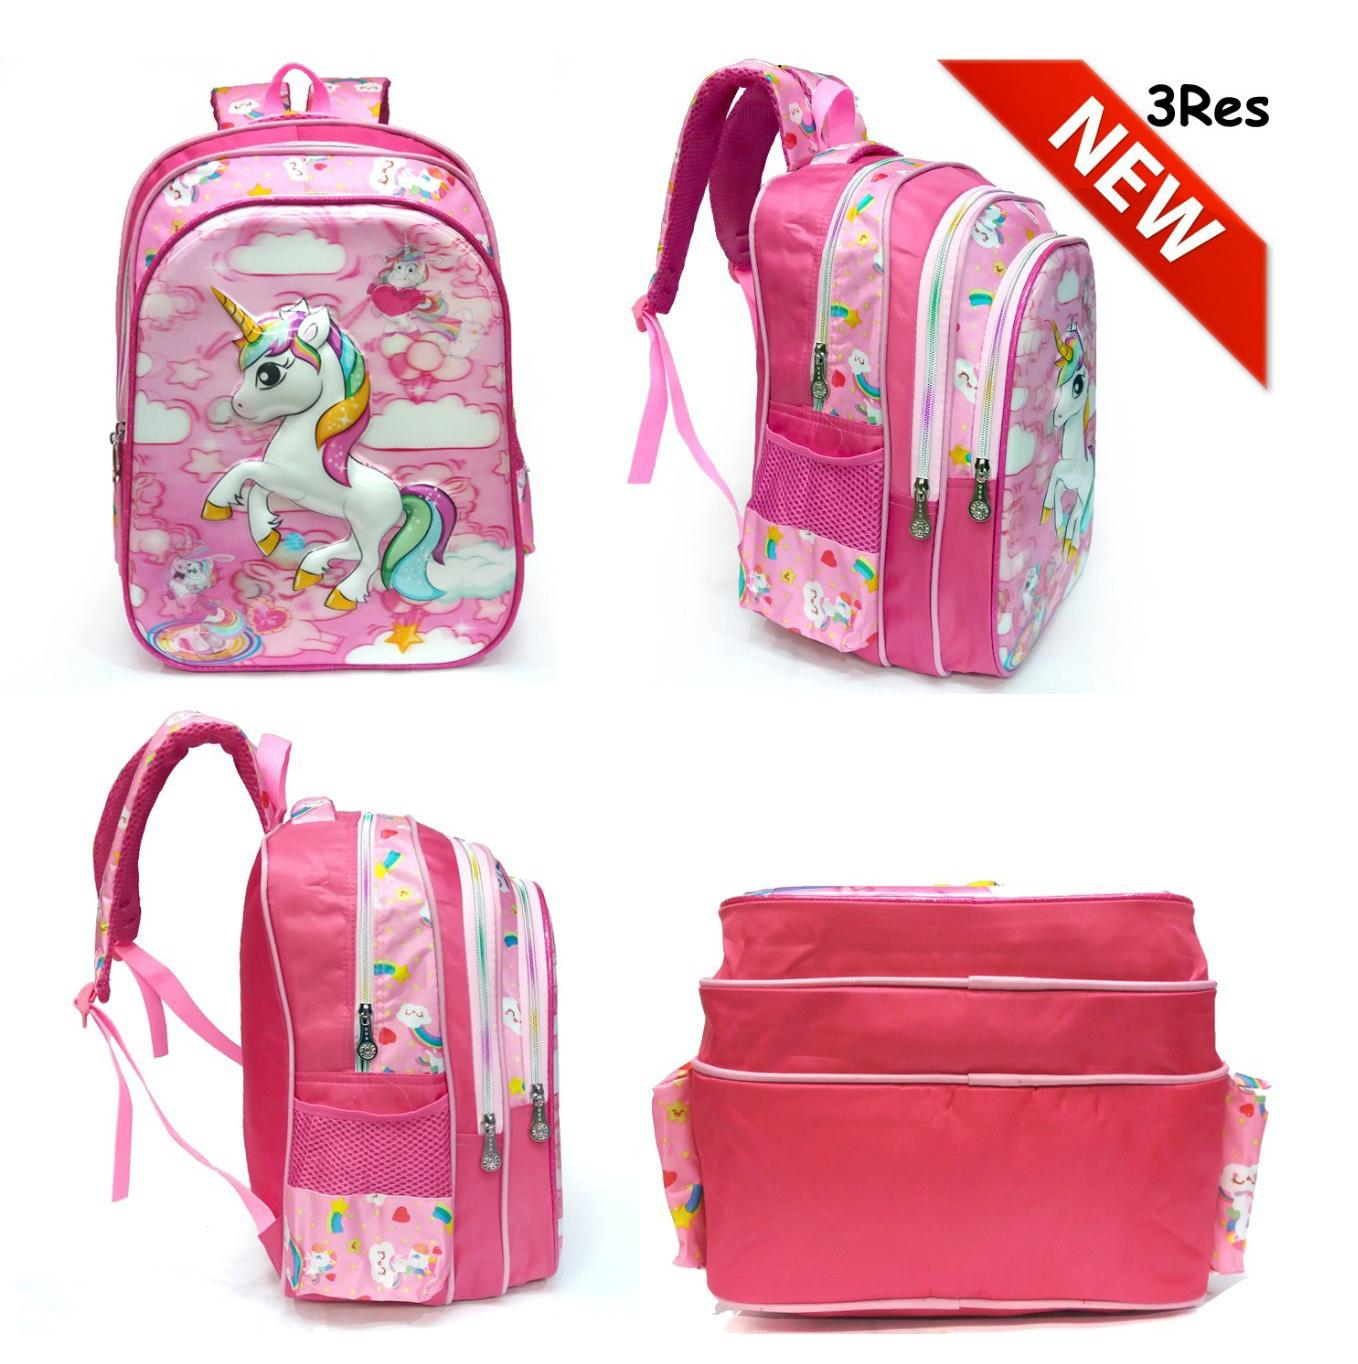 Onlan NEW TAS ANAK Full Motif Ransel Anak SD Motif Anak Perempuan LOL – Little Pony – Tsum Tsum – Frozen – Unicorn – Hello Kitty 5D Timbul Import 3 Kantung ...